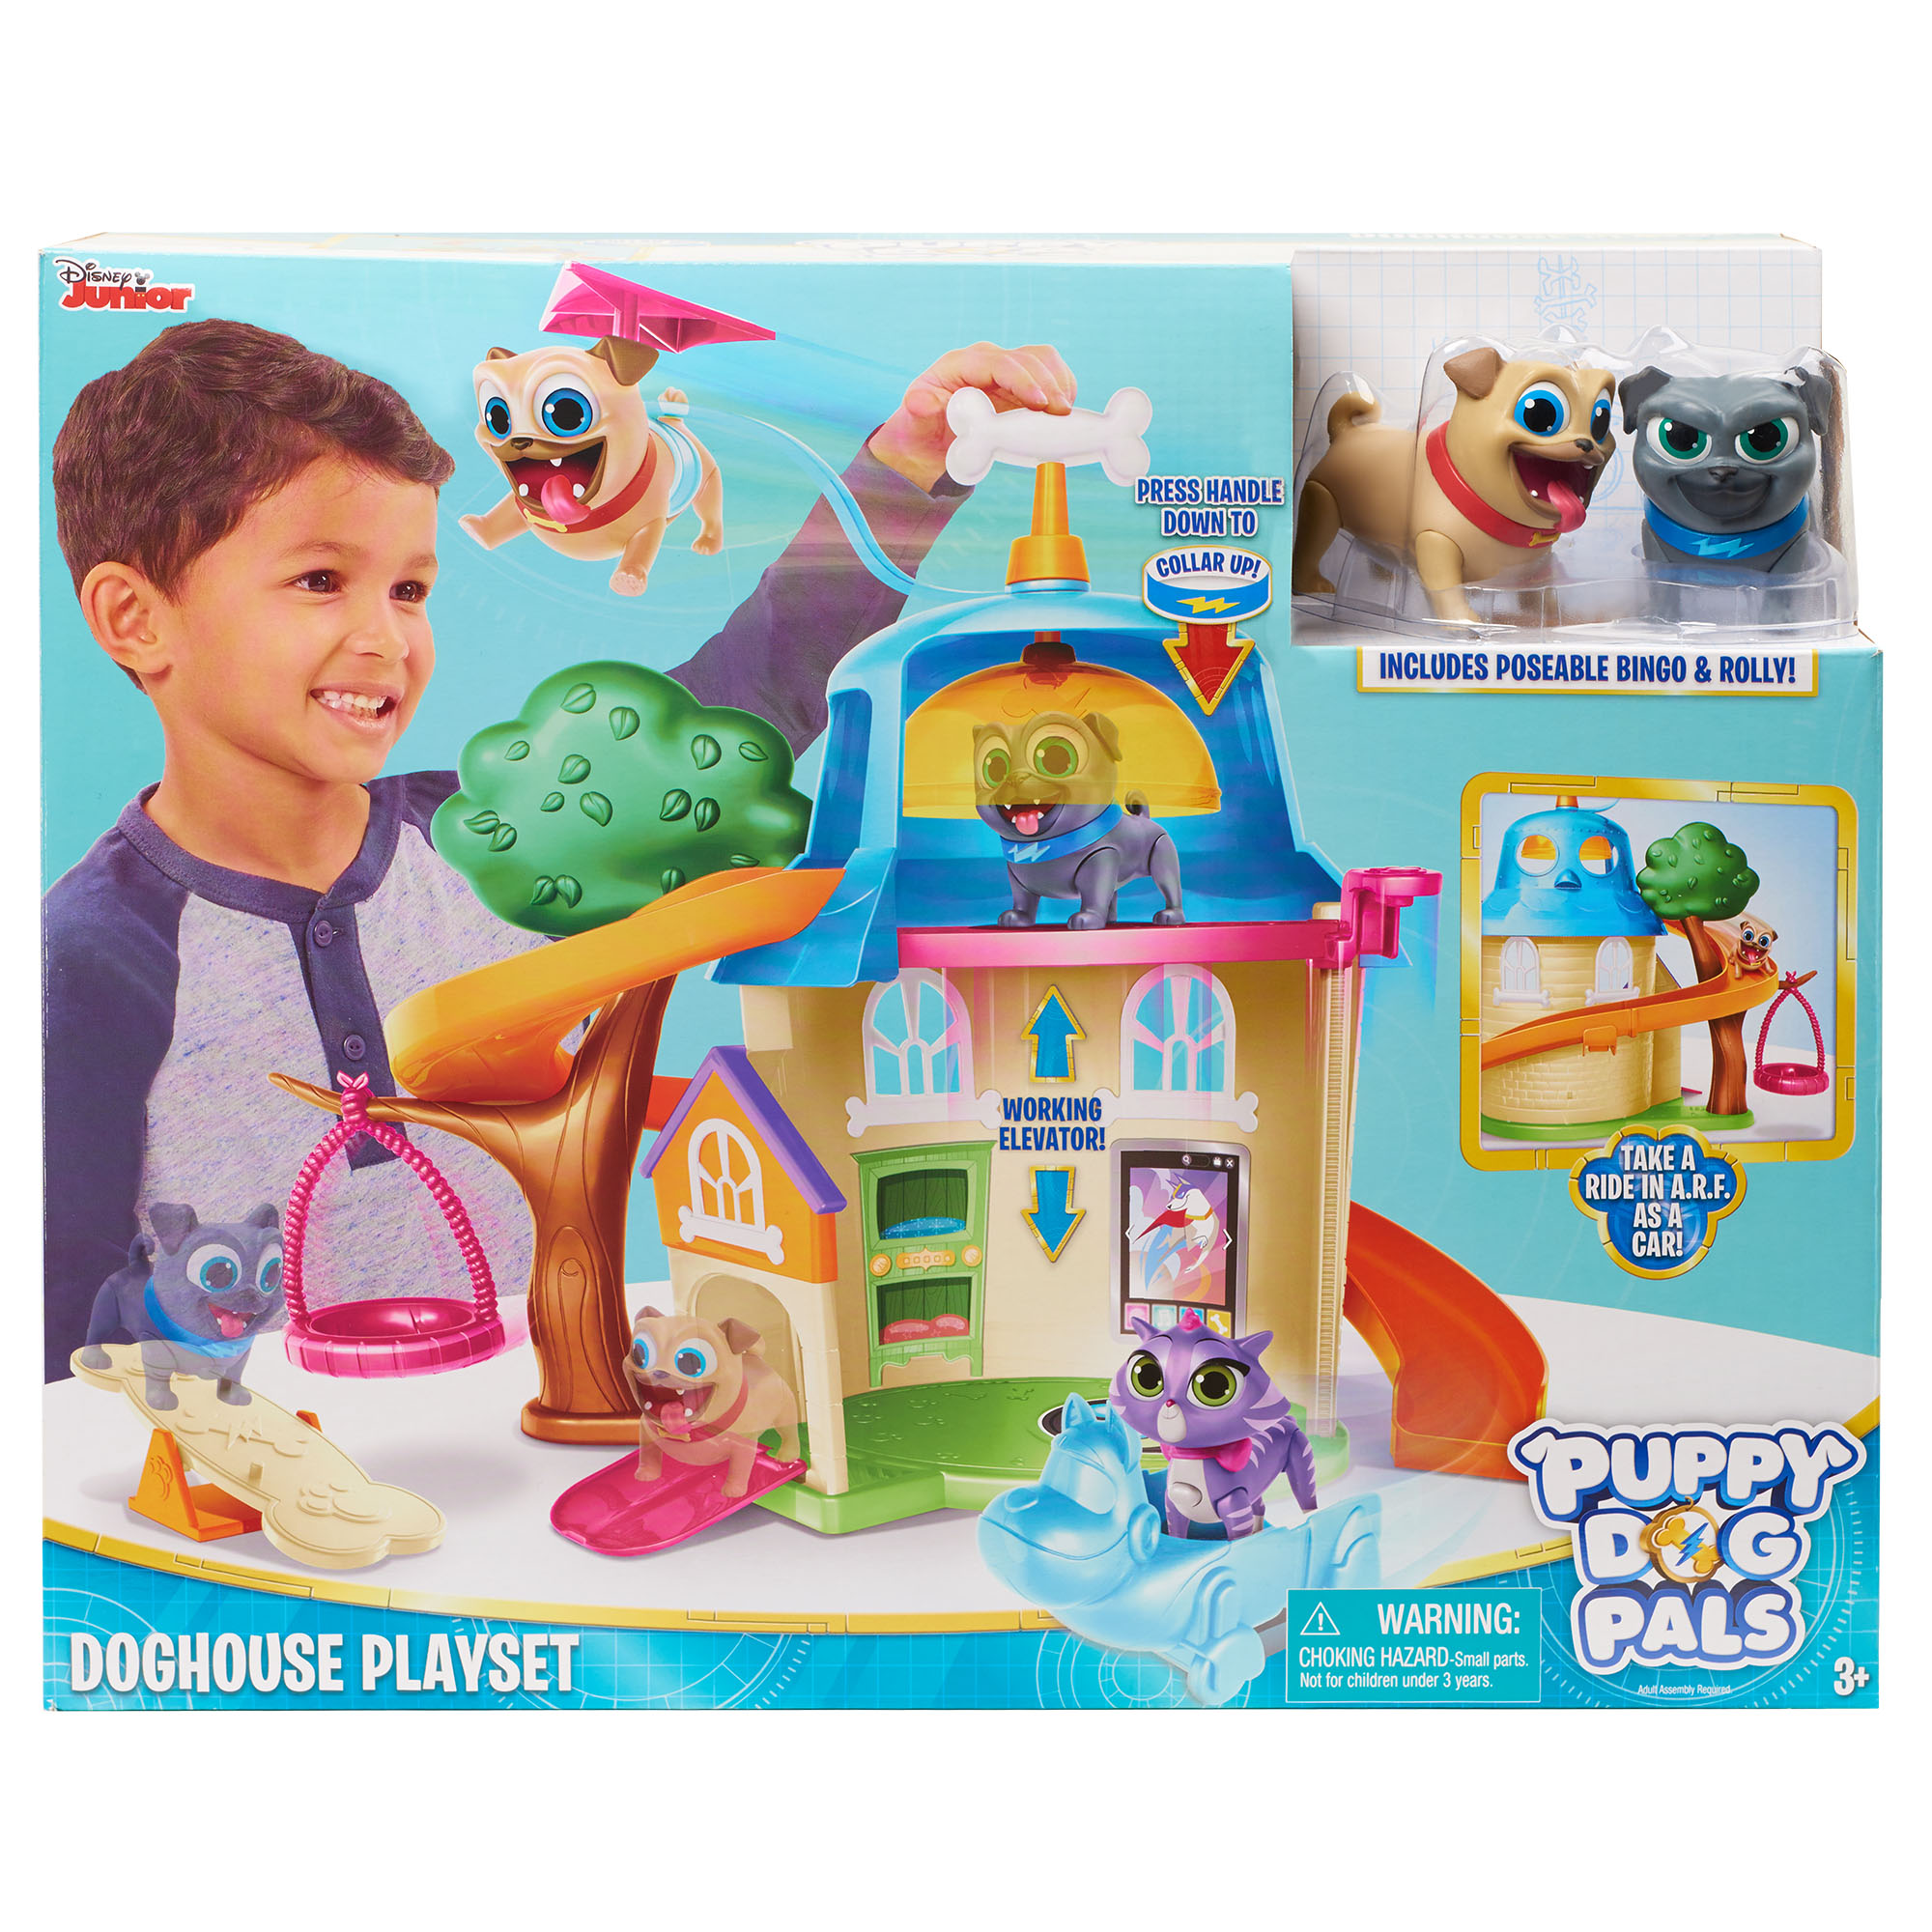 Puppy Dog Pals Doghouse Playset Walmartcom